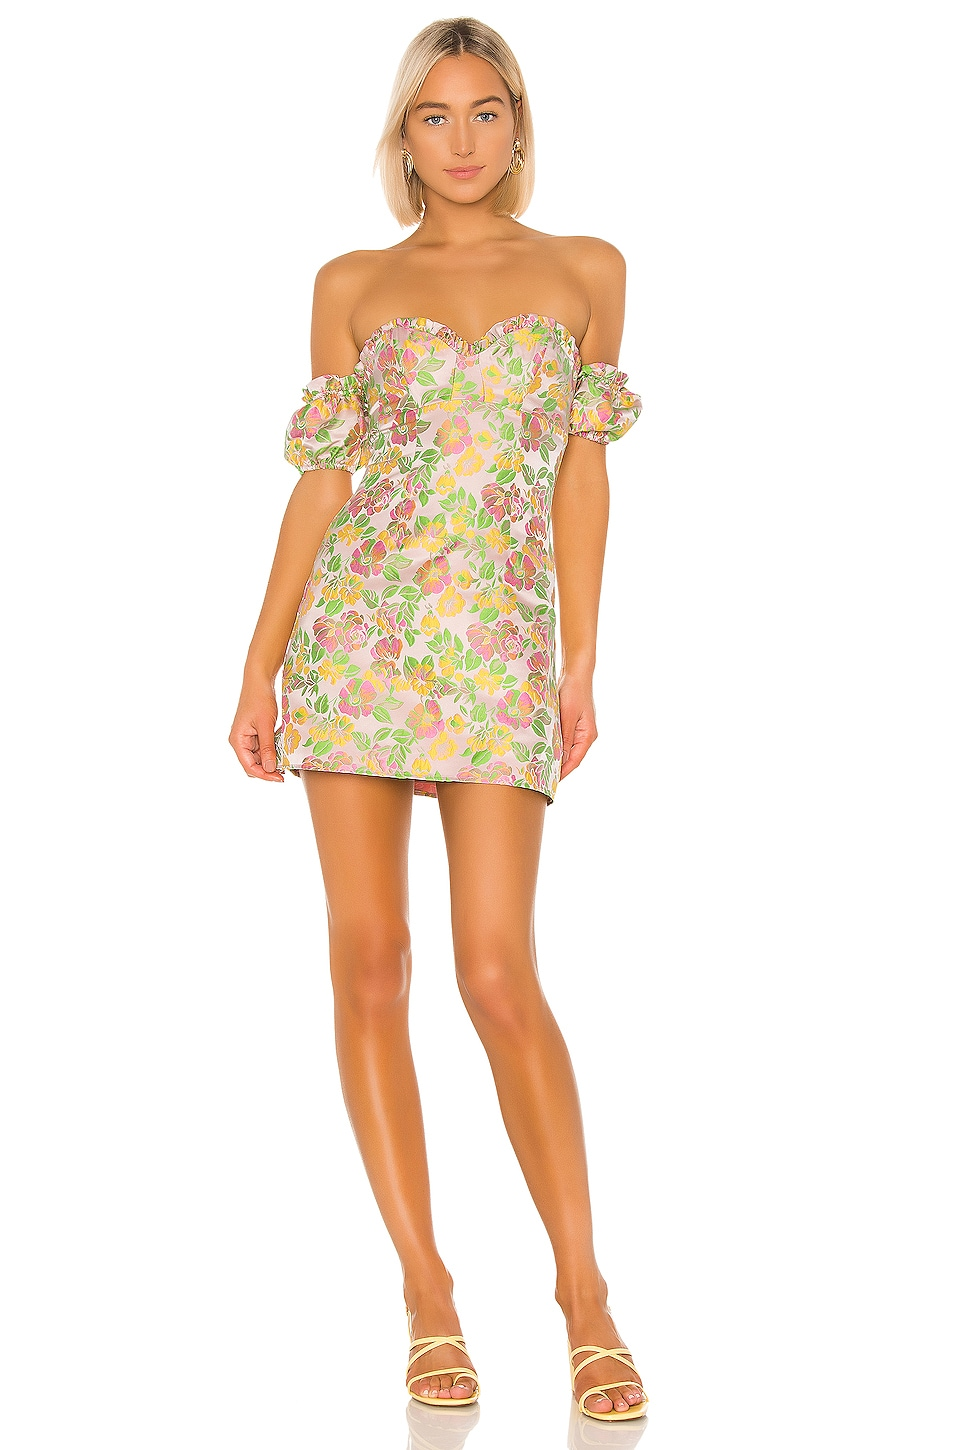 MAJORELLE Skye Mini Dress in Flamingo Pink